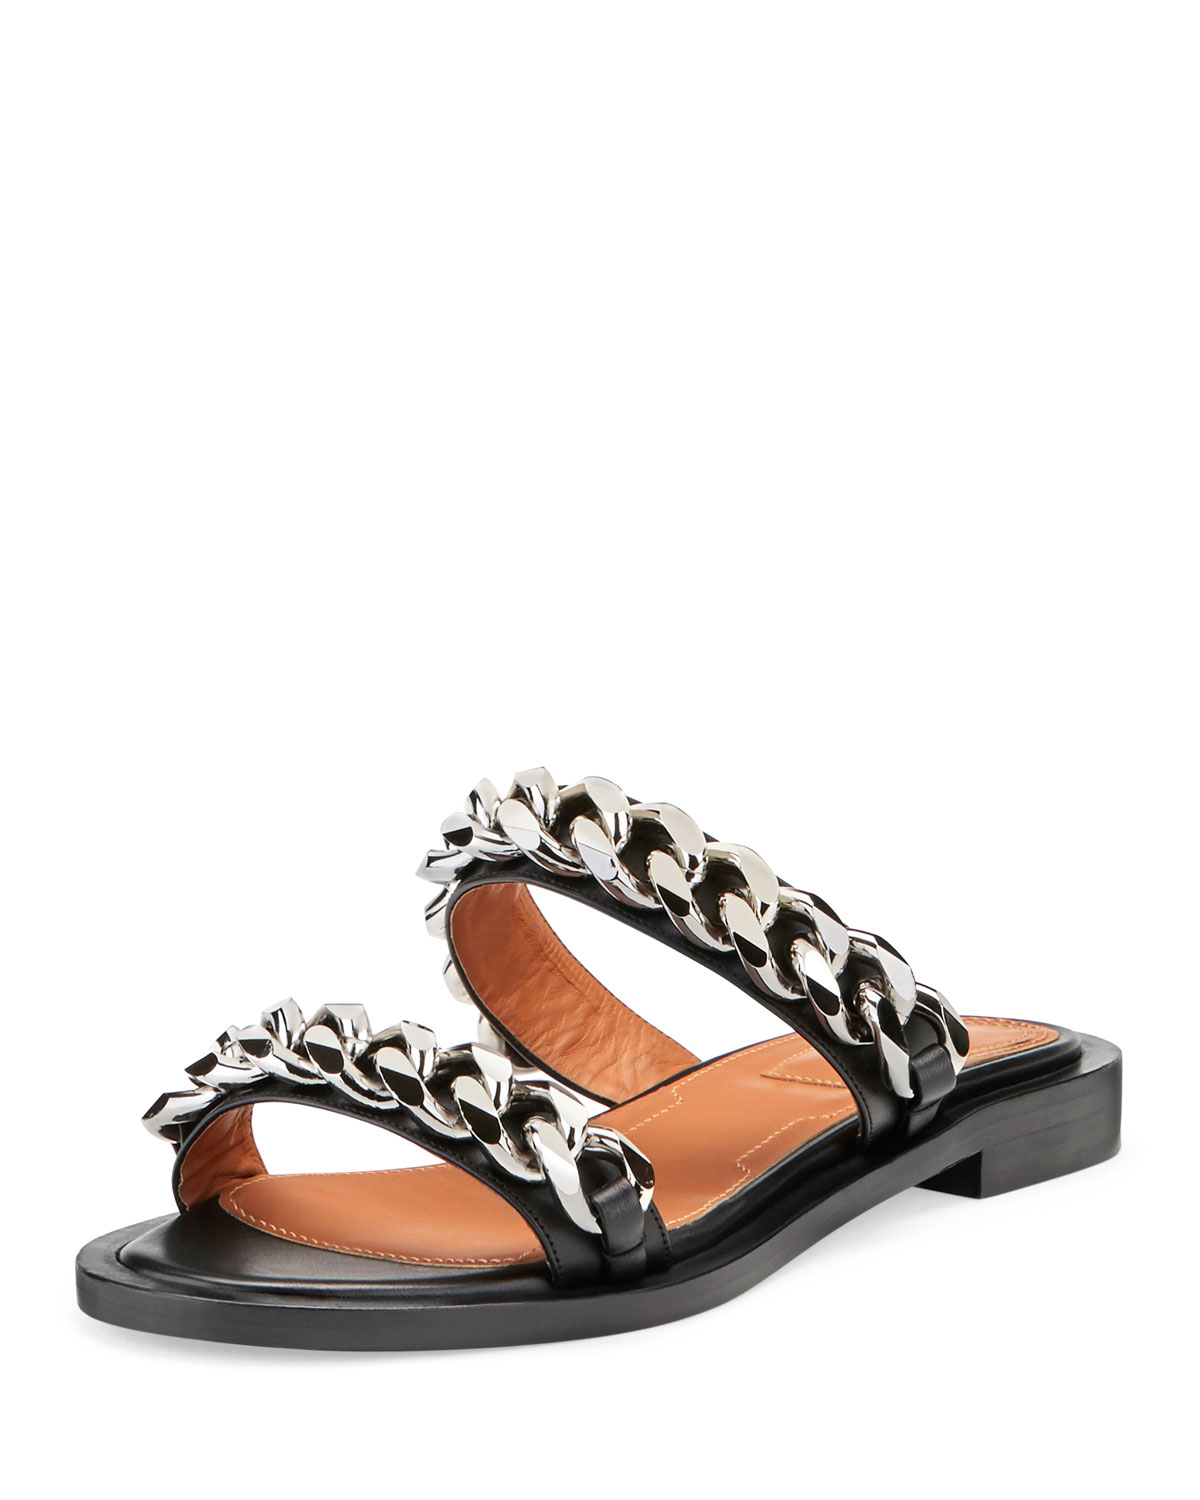 Givenchy Black Double Band Chain Sandals hxZoK